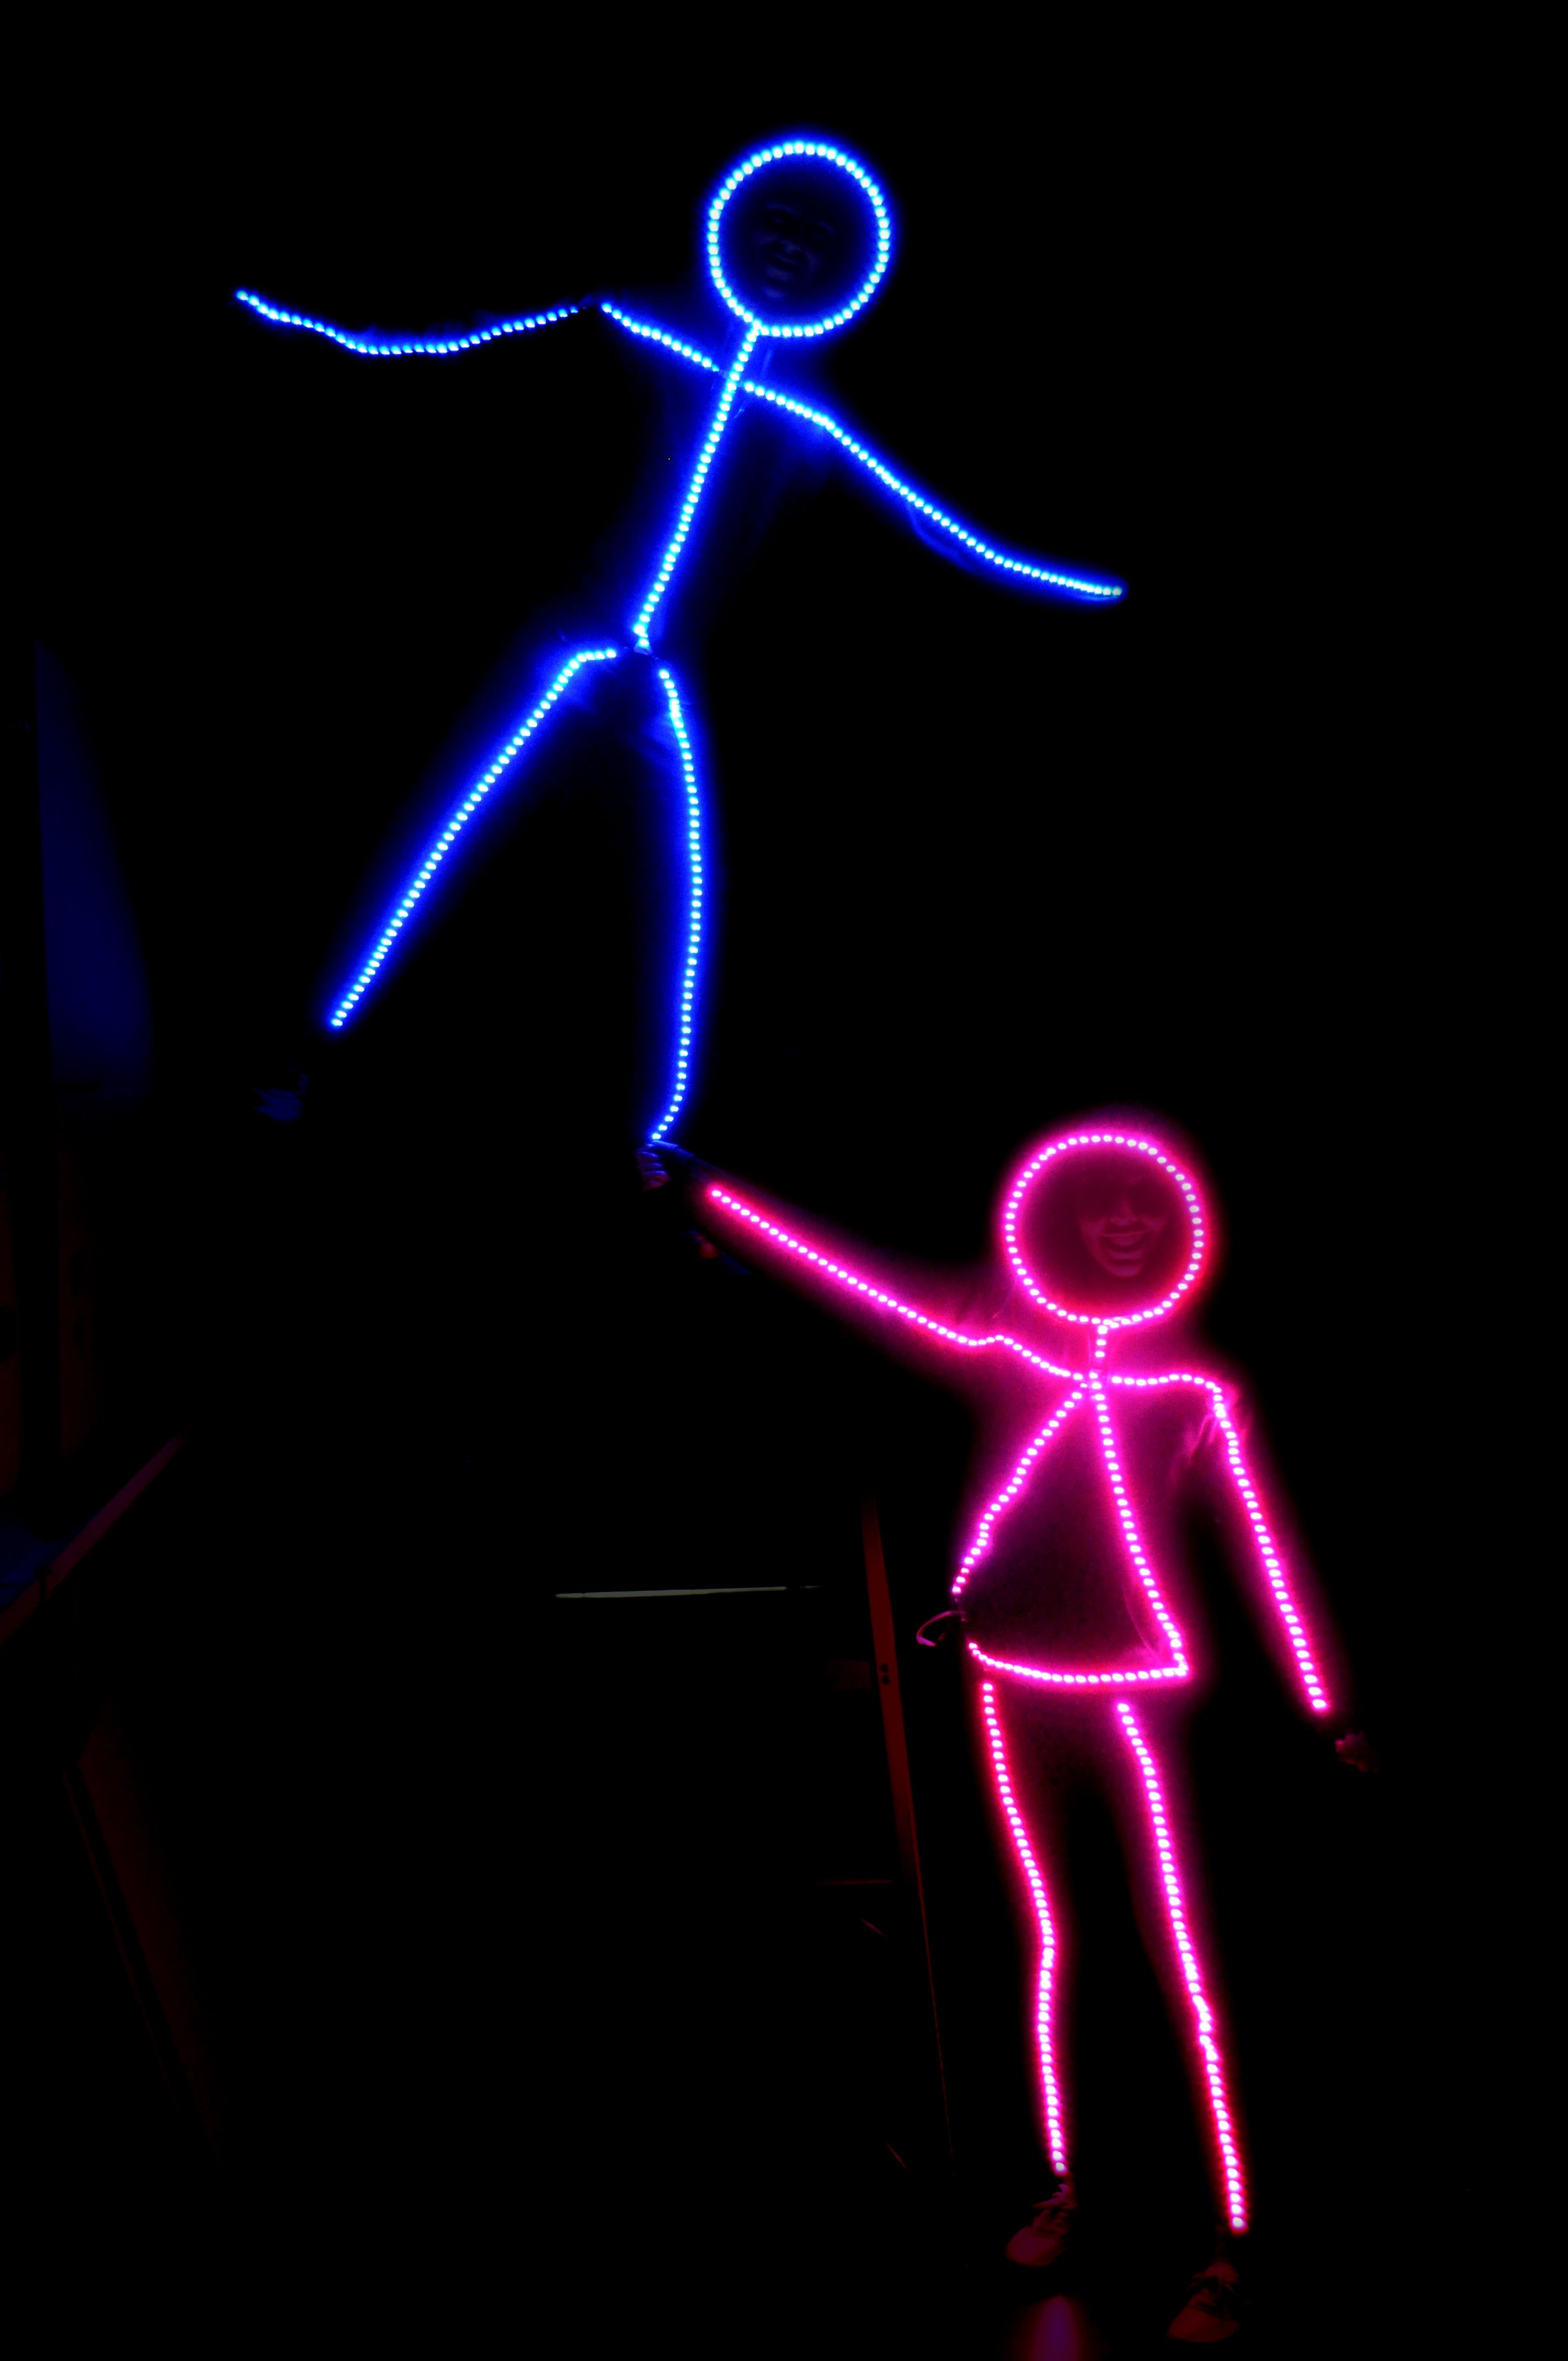 led stick figure halloween costume - Glow Sticks For Halloween